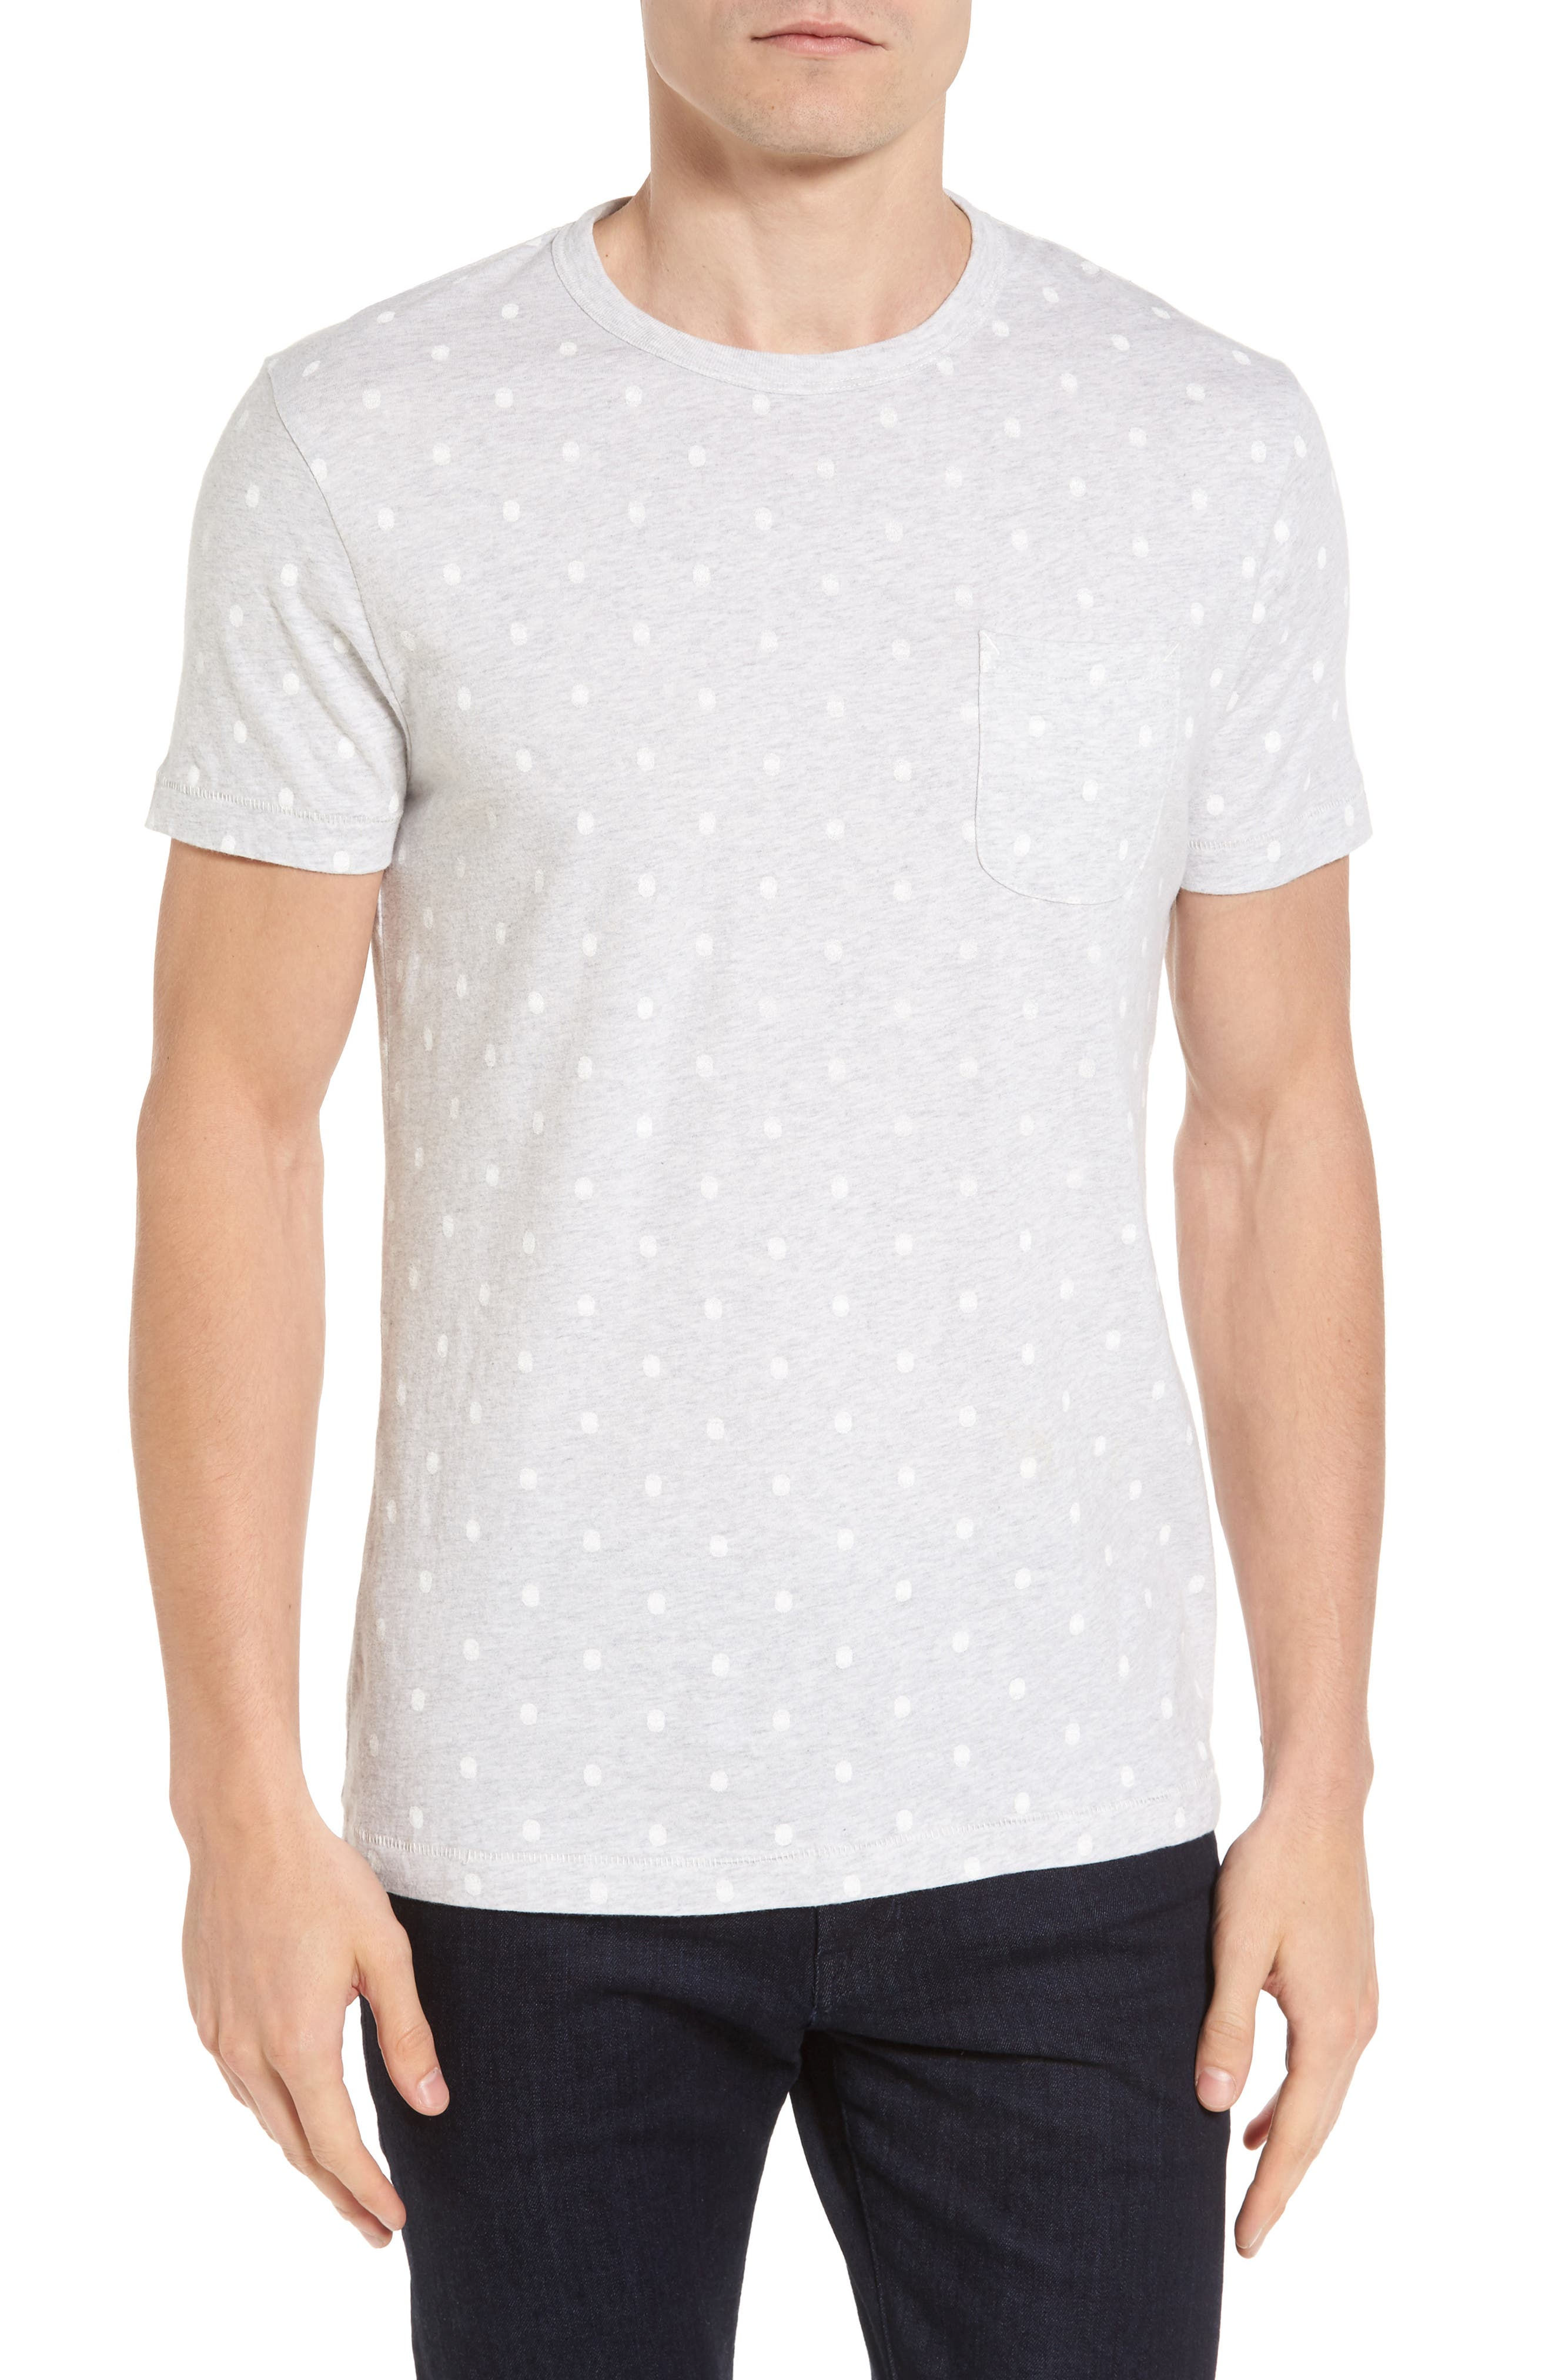 Alternate Image 1 Selected - French Connection Polka Dot T-Shirt